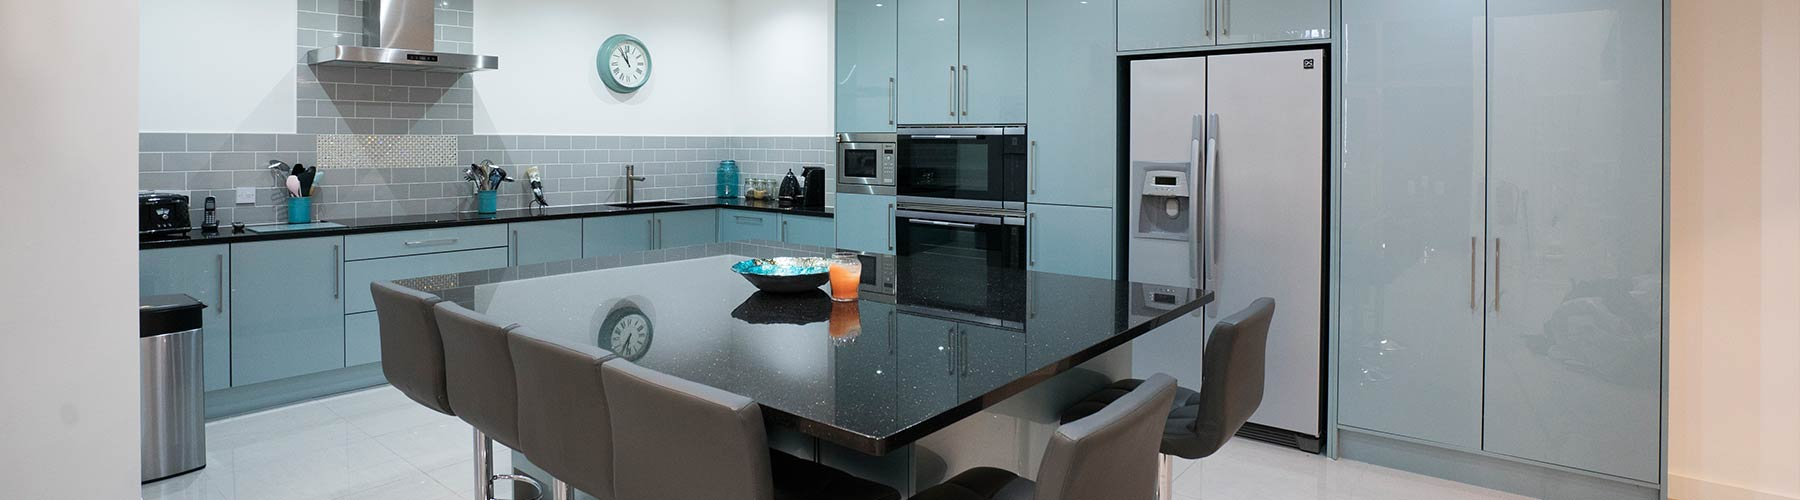 High Gloss Kitchens liverpool | Cleveland Kitchens Liverpool